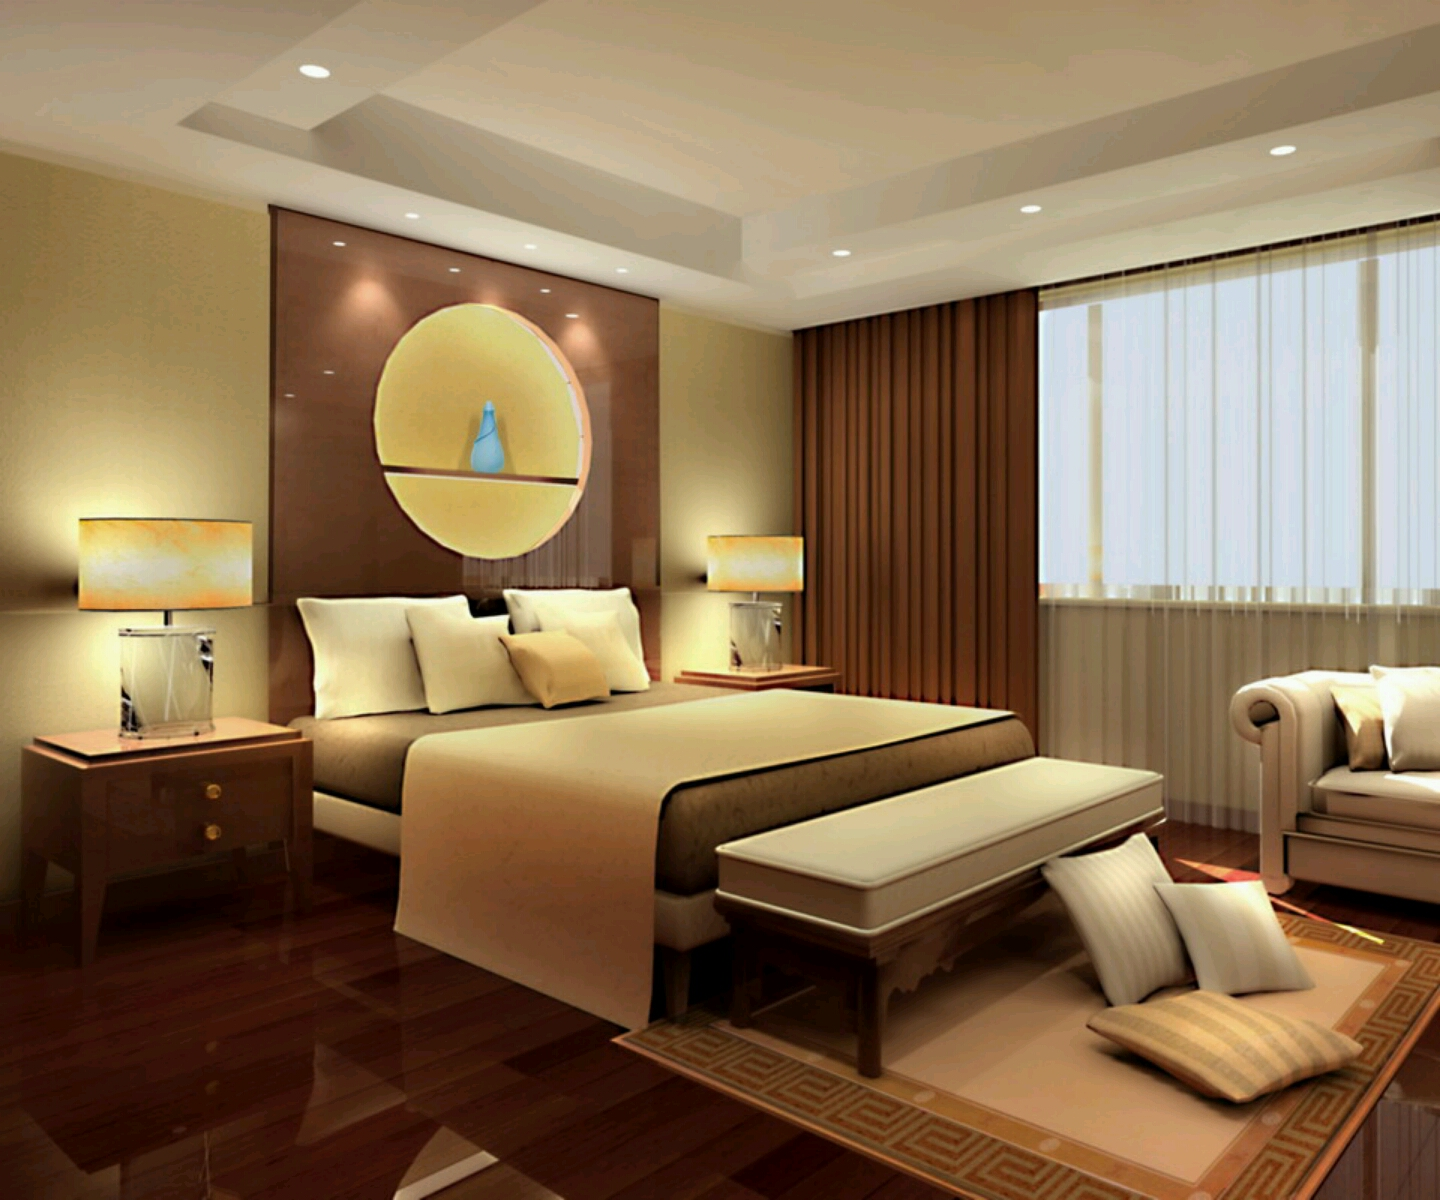 New home designs latest modern beautiful bedrooms for Bedroom images interior designs